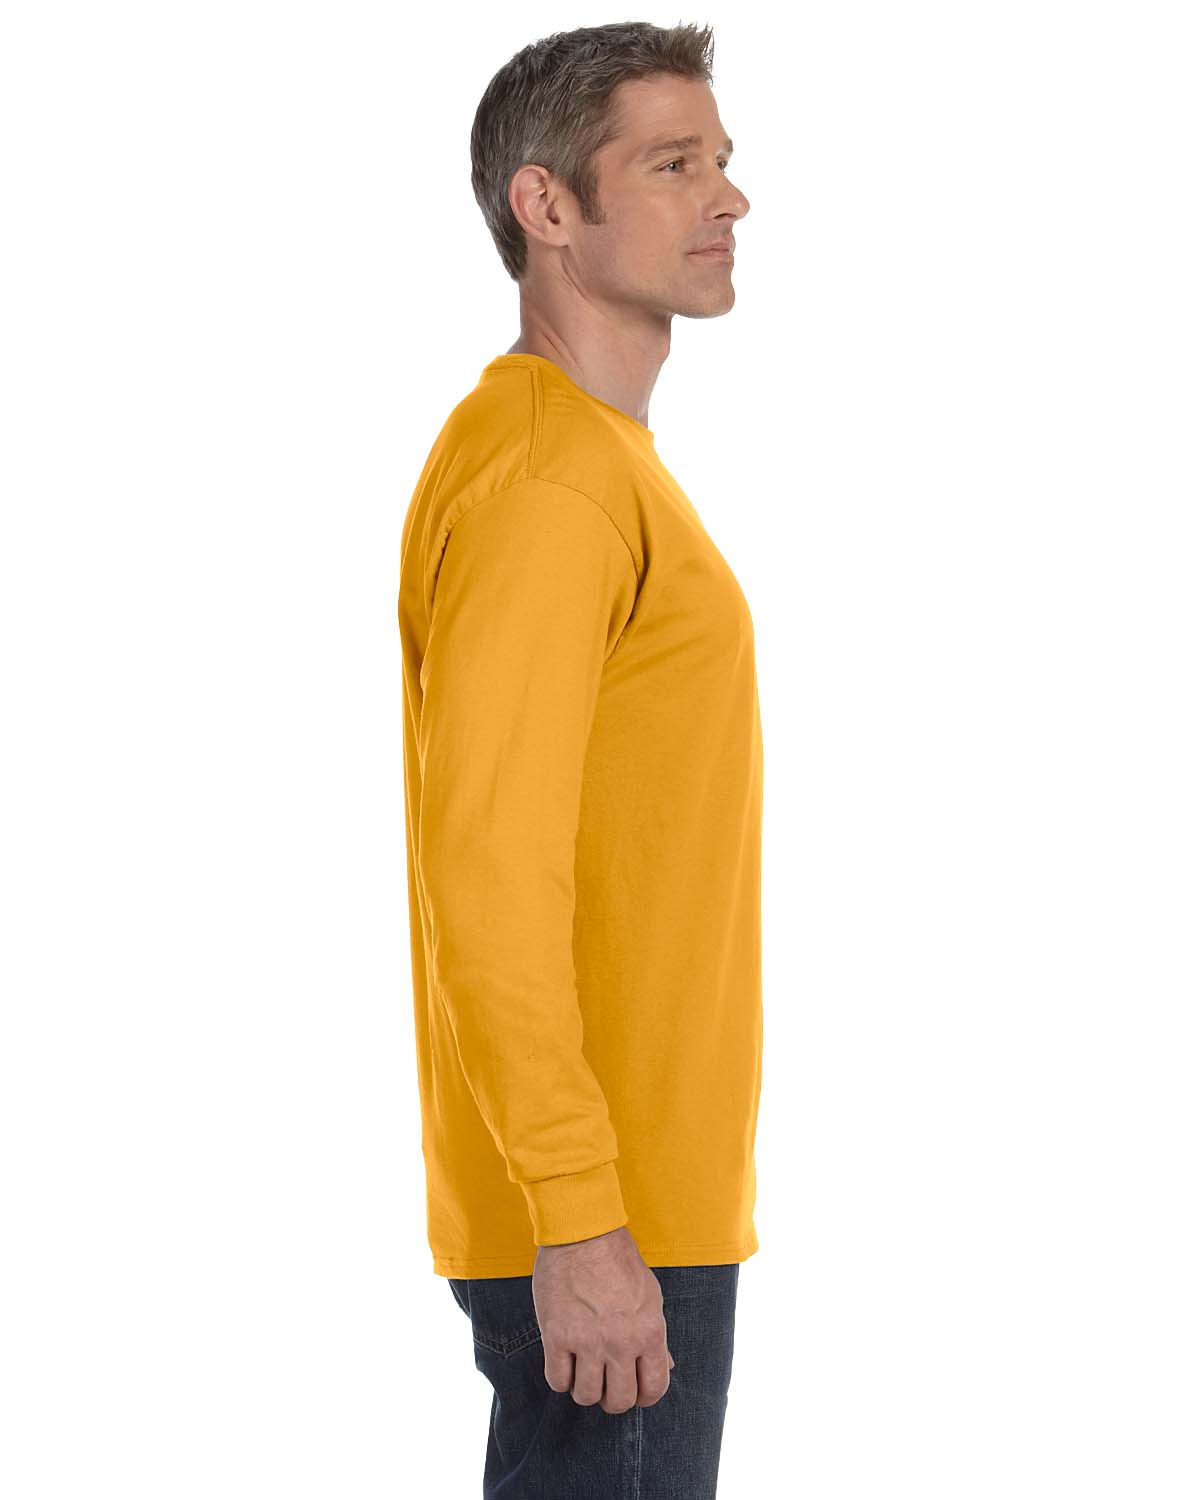 Gildan-Mens-T-Shirt-Long-Sleeve-Heavy-Cotton-5-3-oz-S-XL-R-G540-5400 thumbnail 24